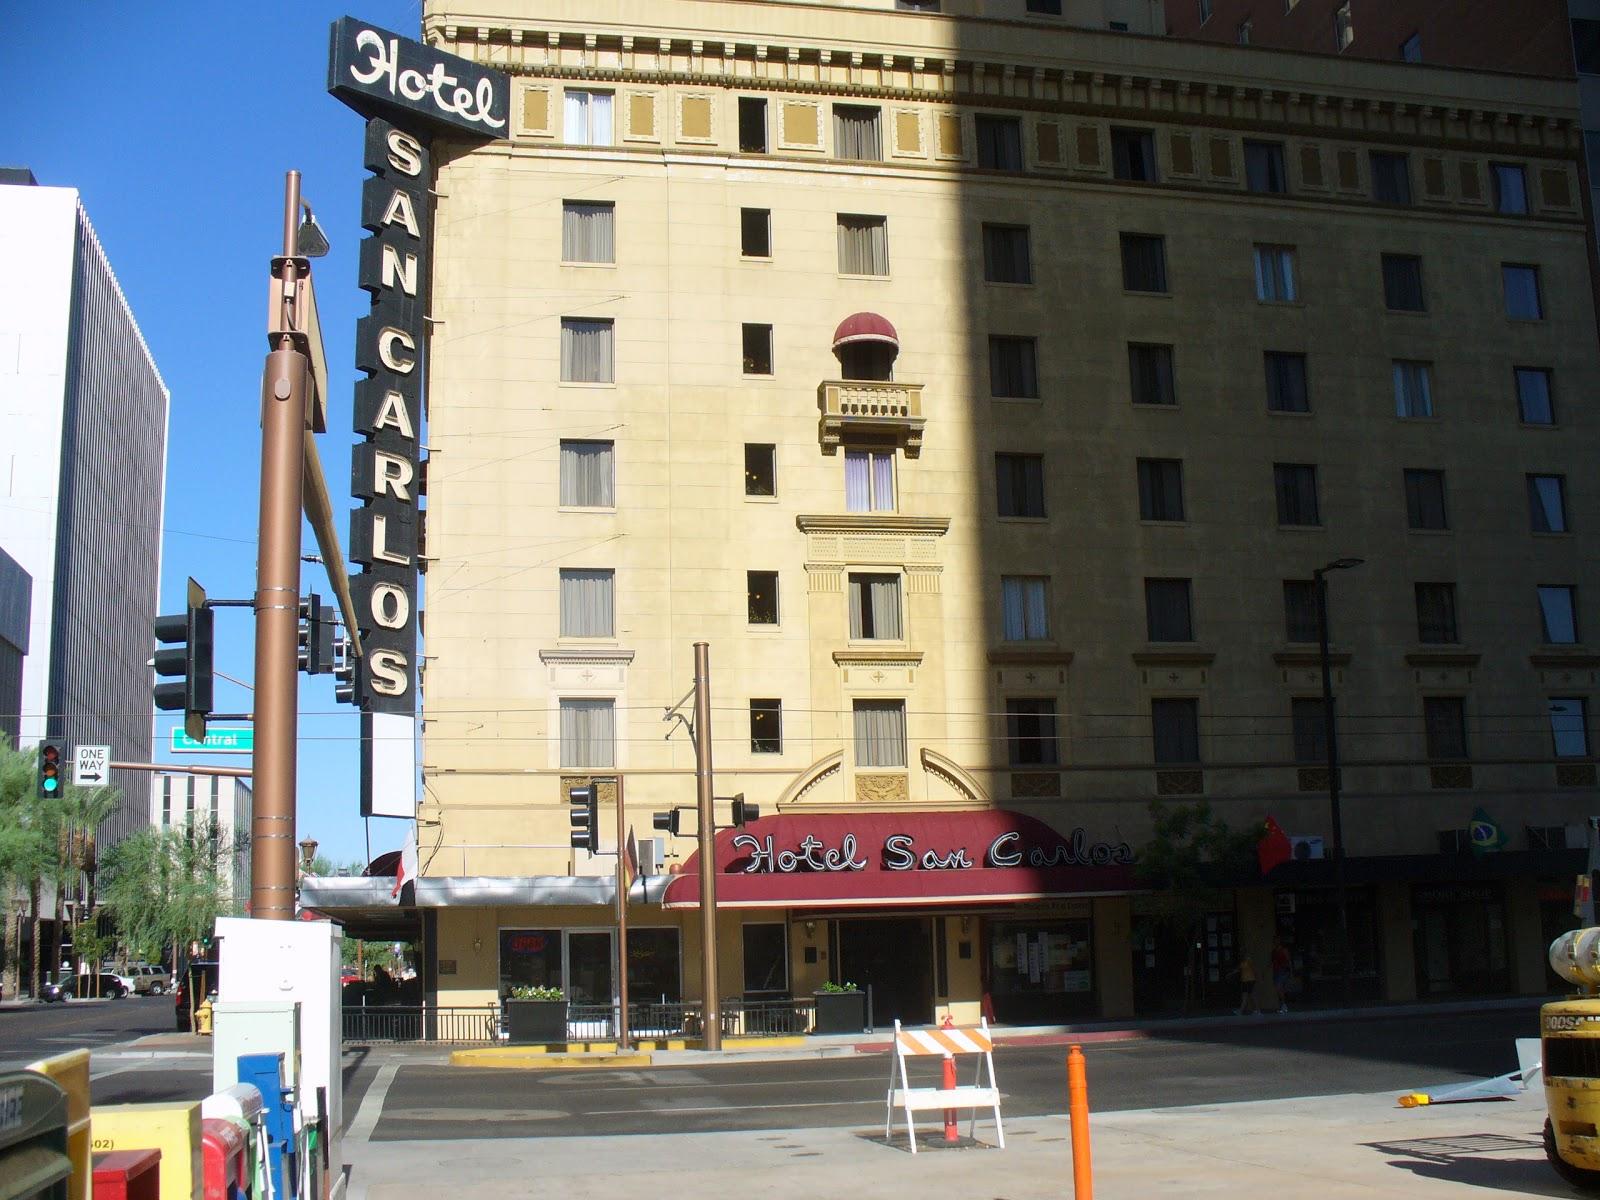 Construction Was Done By 1927 On The Hotel San Carlos In Downtown Phoenix It Had Look And Feel Of An Italian Renaissance Place Hip To